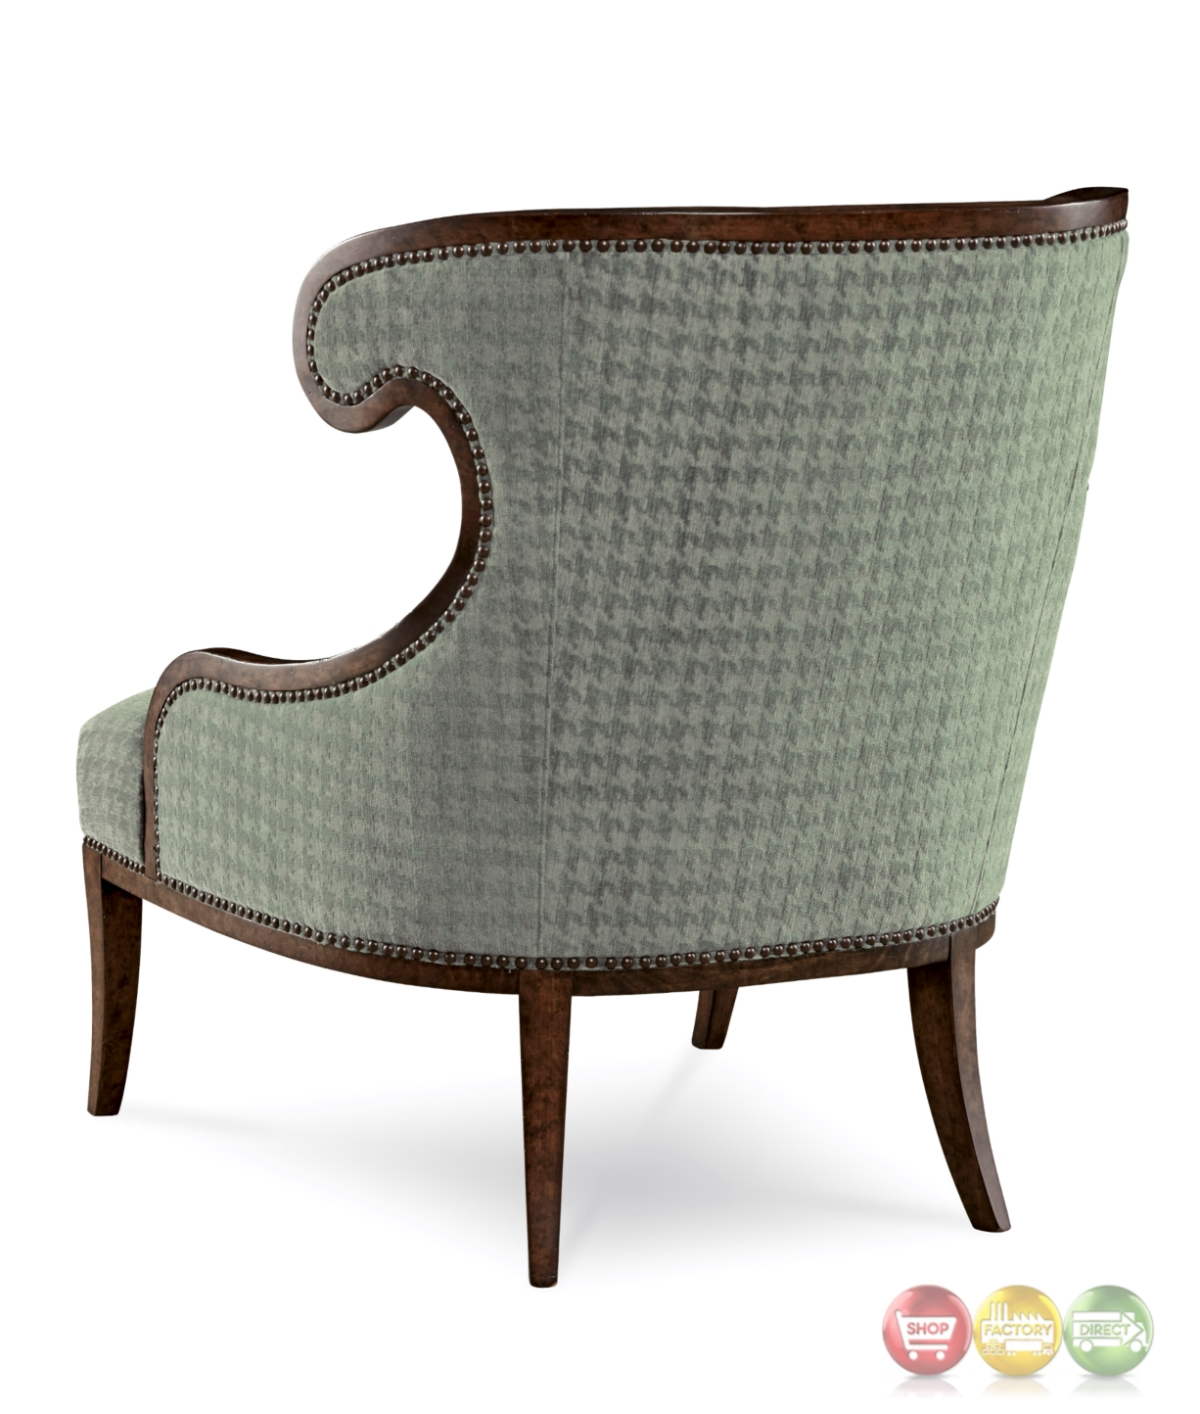 Palazzo Italian Curved Accent Chair With Faded Teal